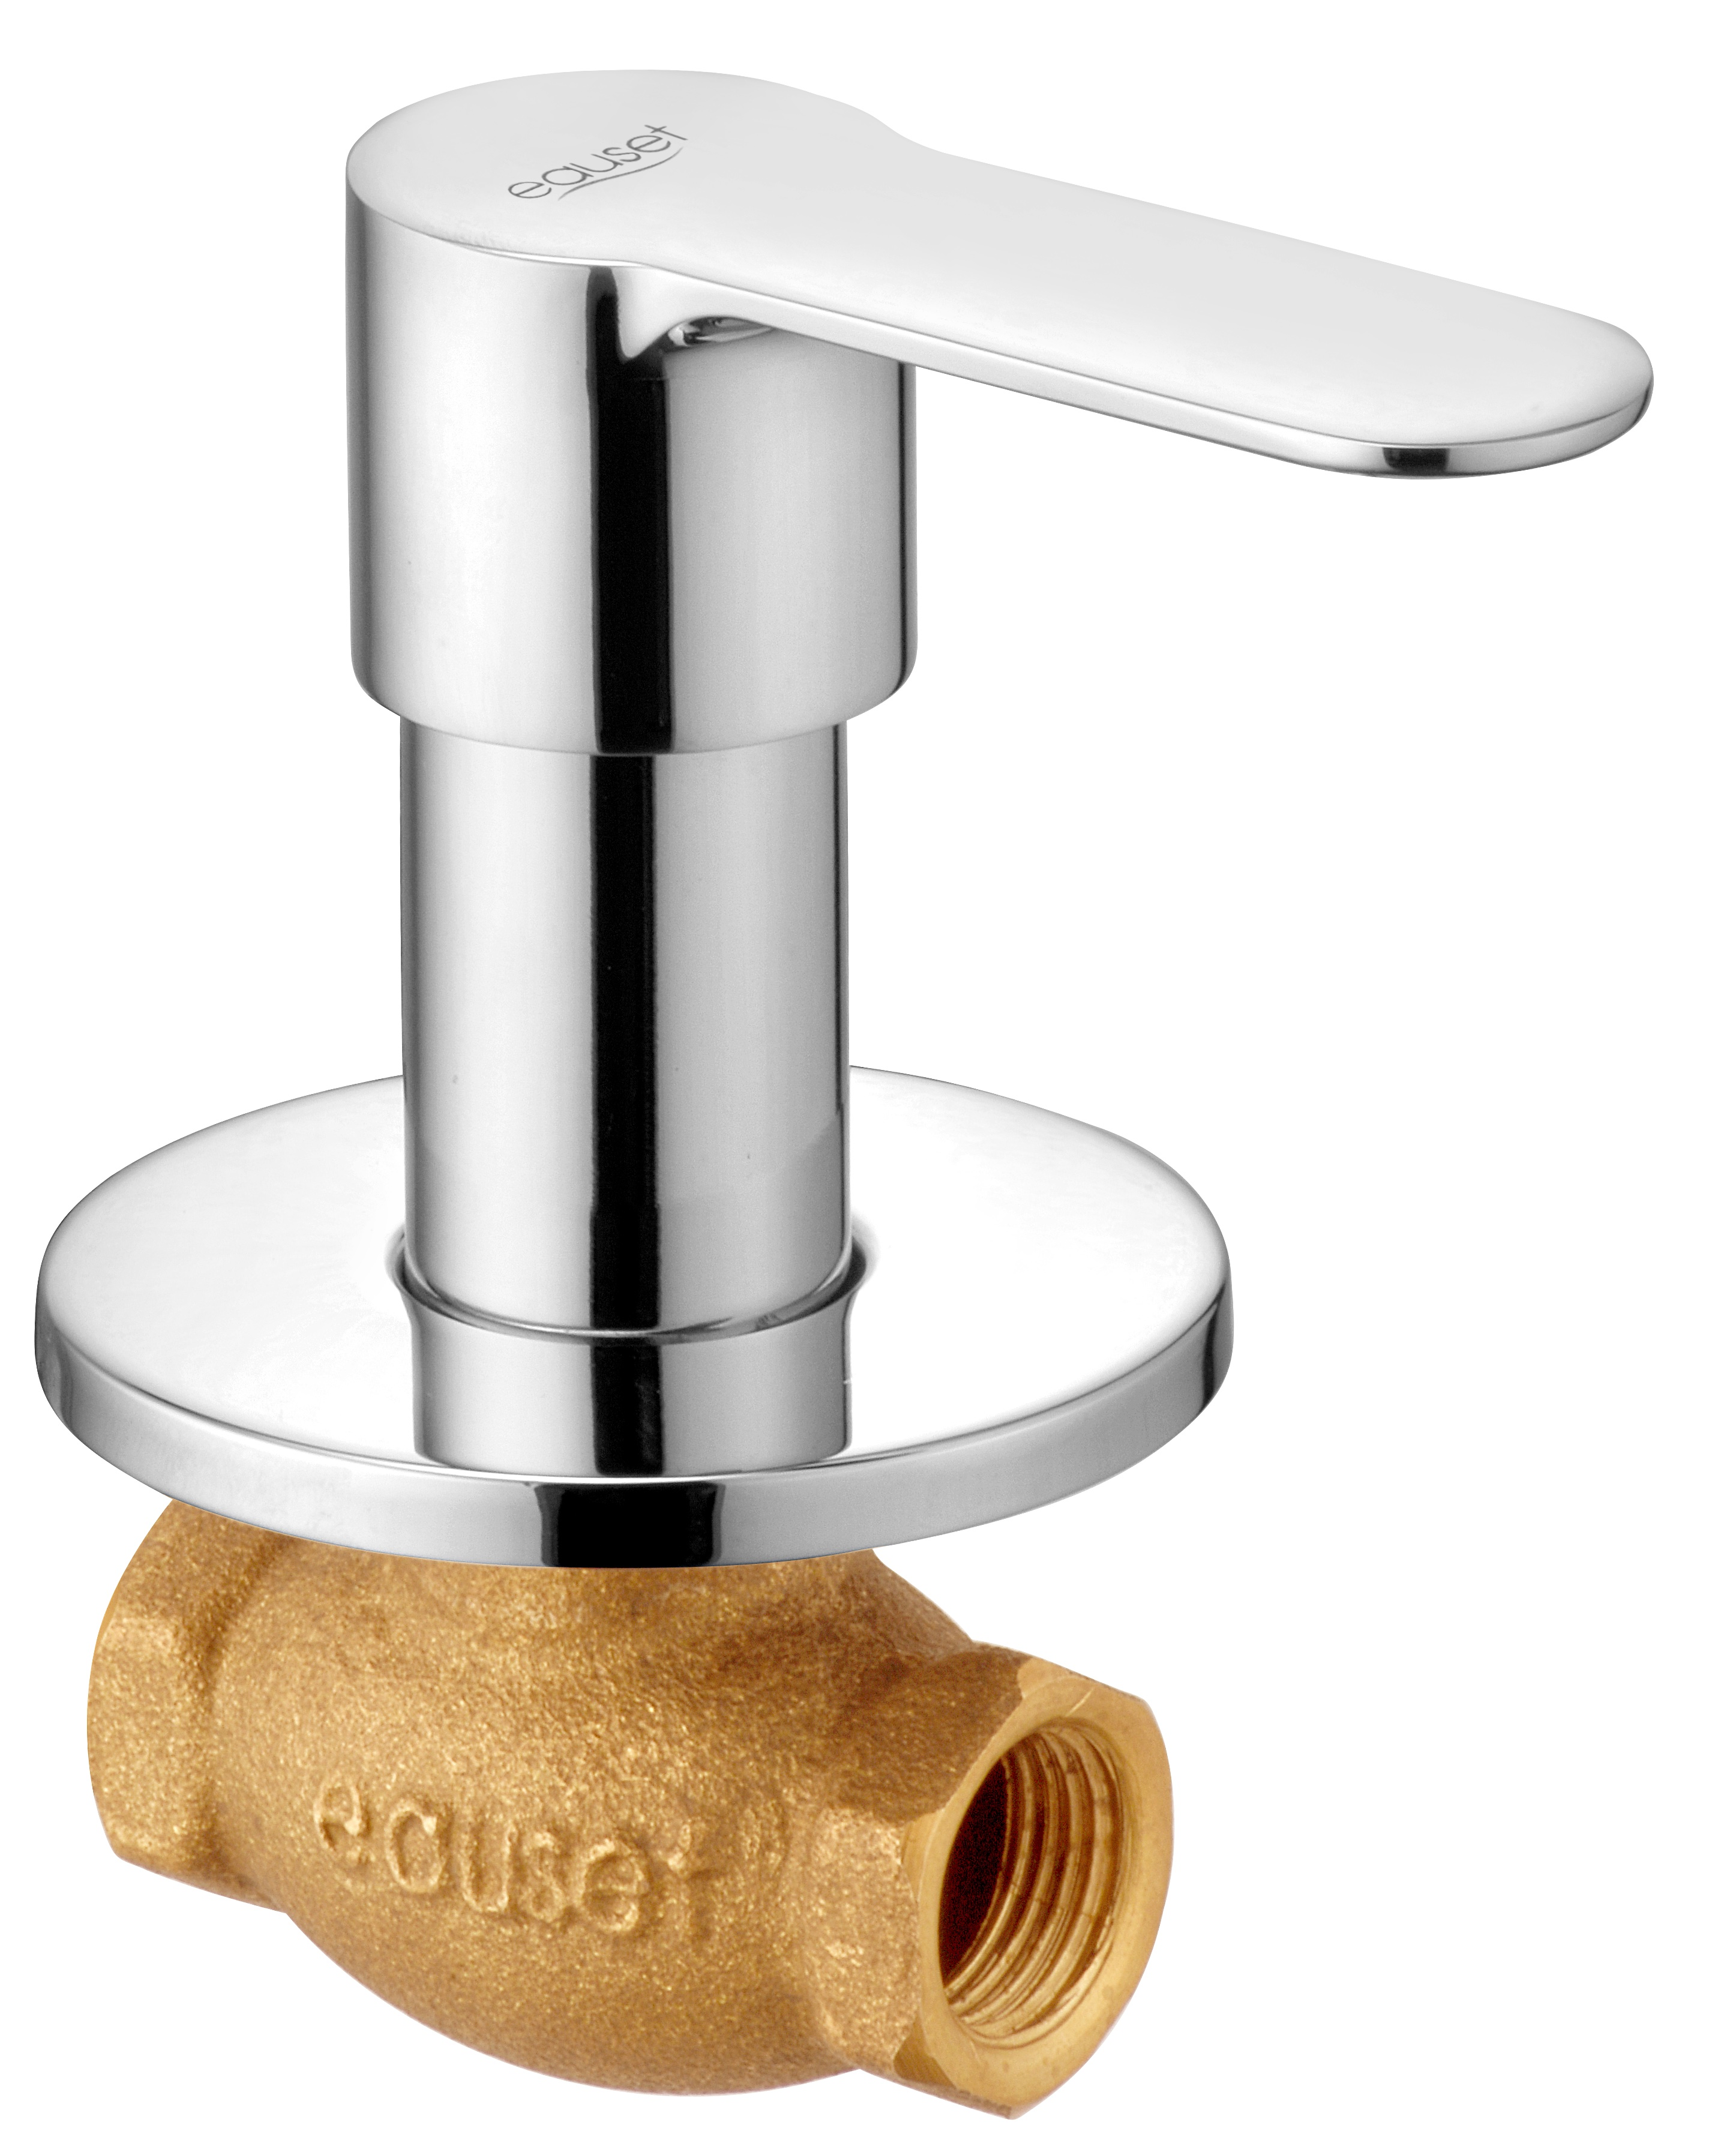 Concealed Stop Cock 15mm With Wall Flange.